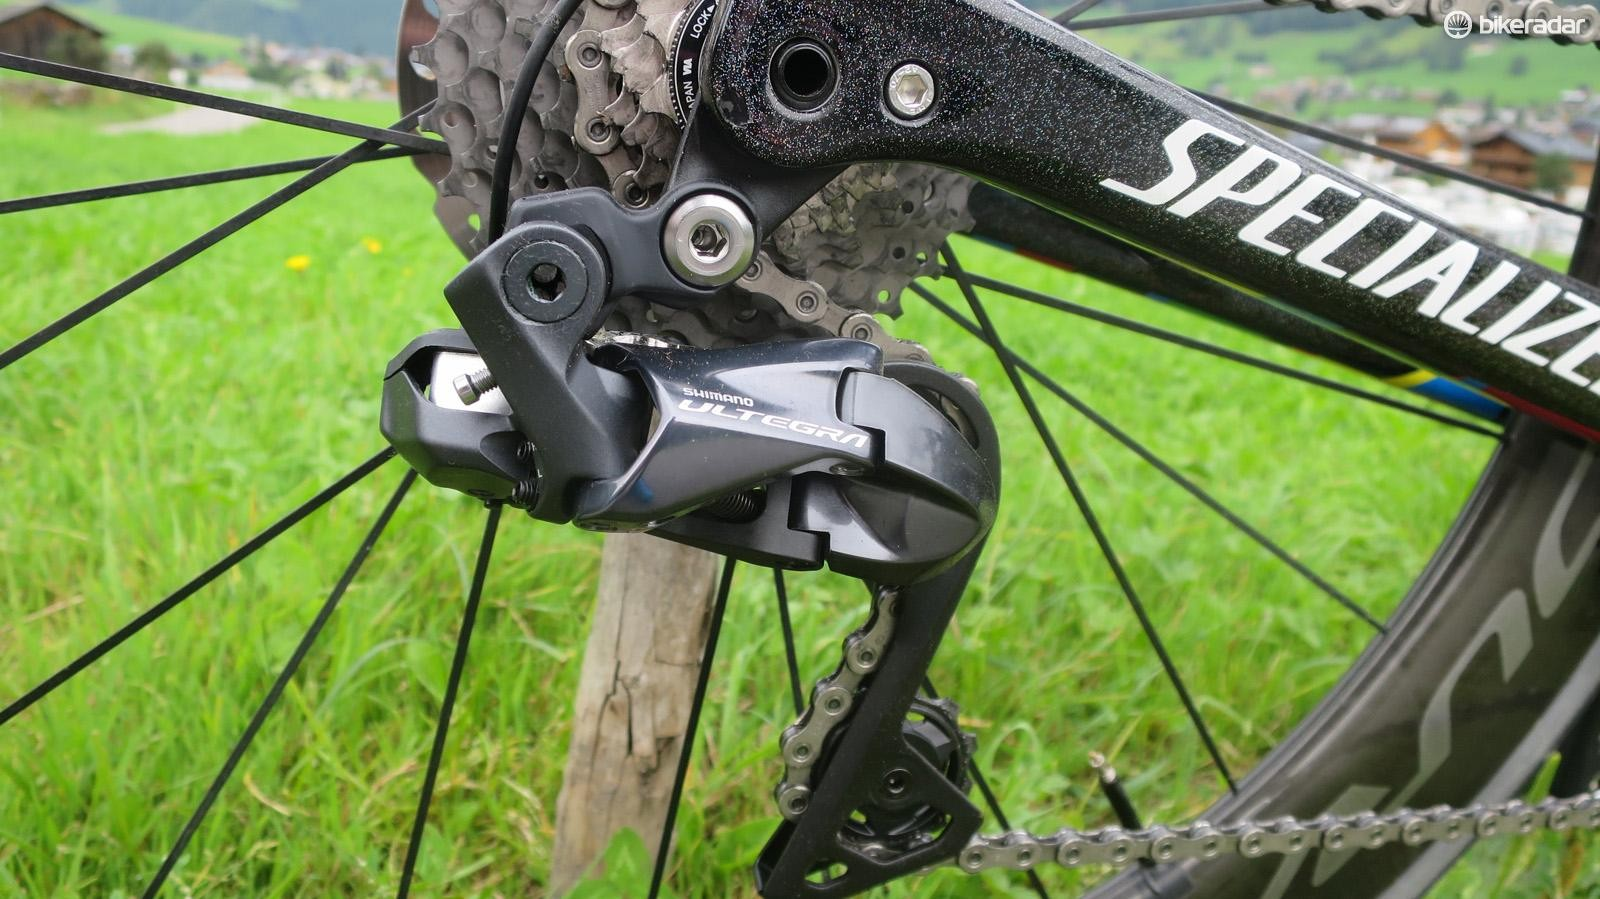 The new Ultegra Di2 rear mech looks pretty much identical to Dura-Ace, save for the alloy cage in place of carbon